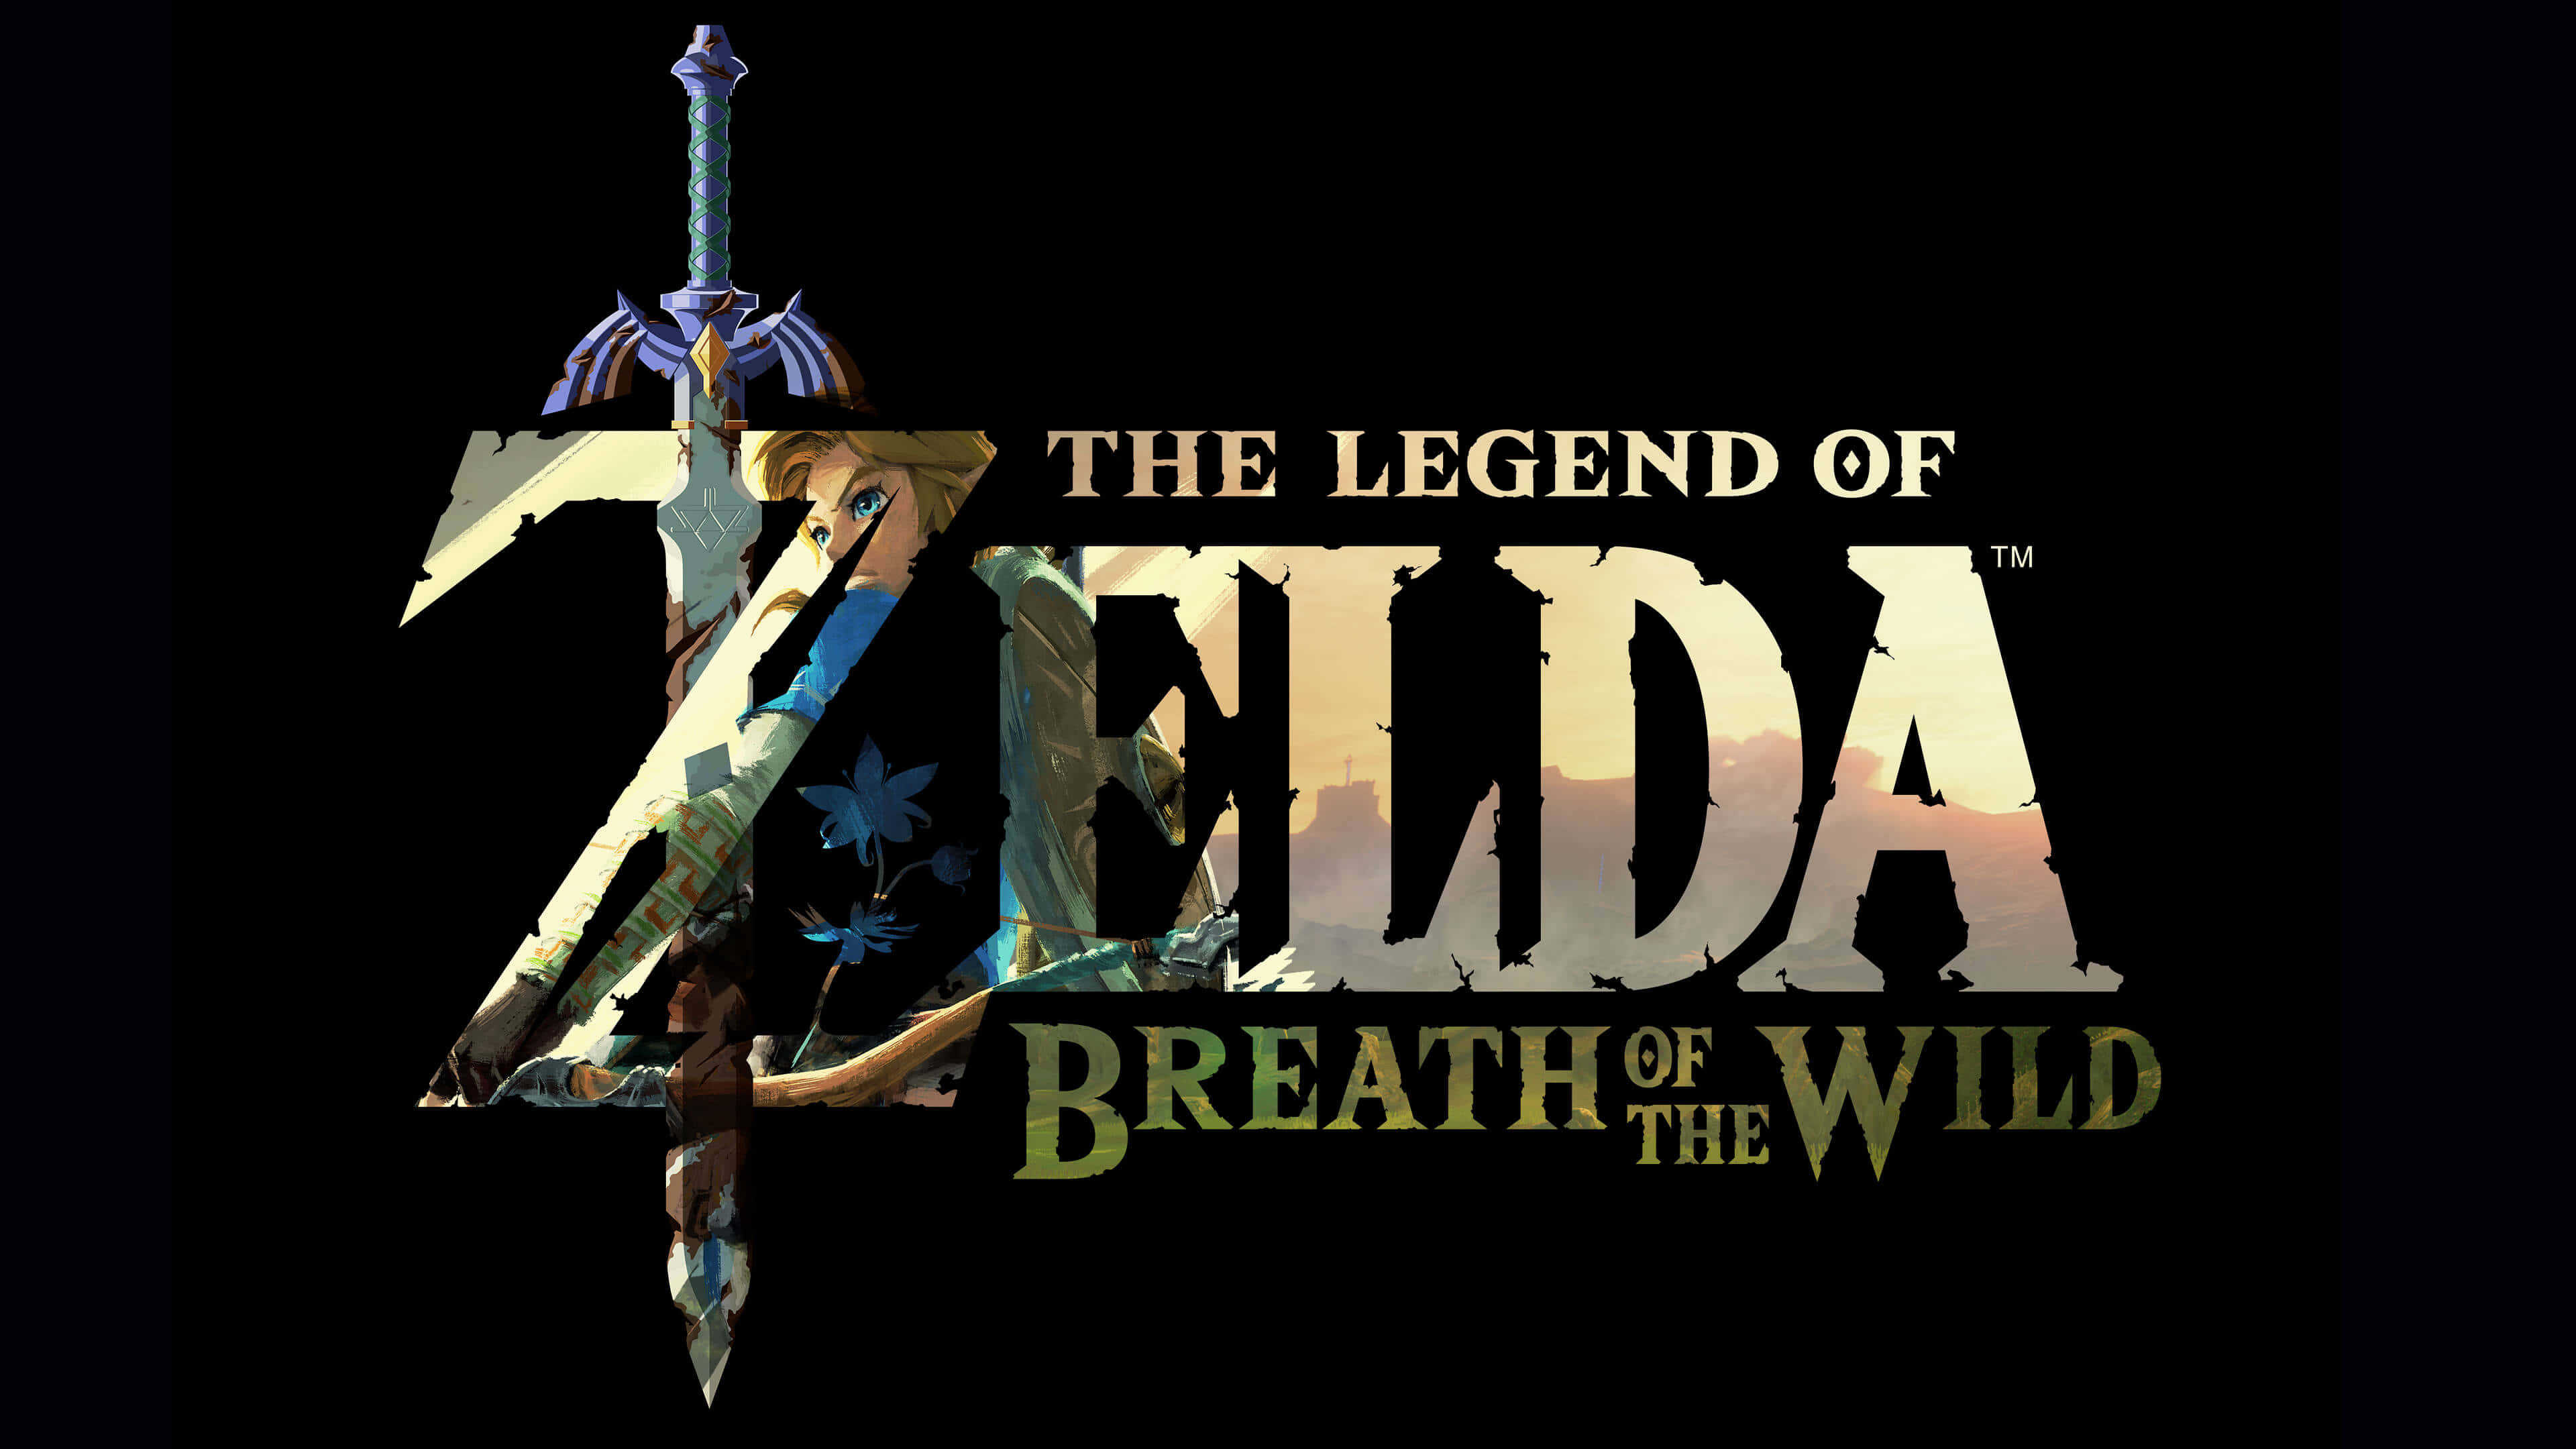 The Legend Of Zelda Breath Of The Wild Uhd 4k Wallpaper Pixelz